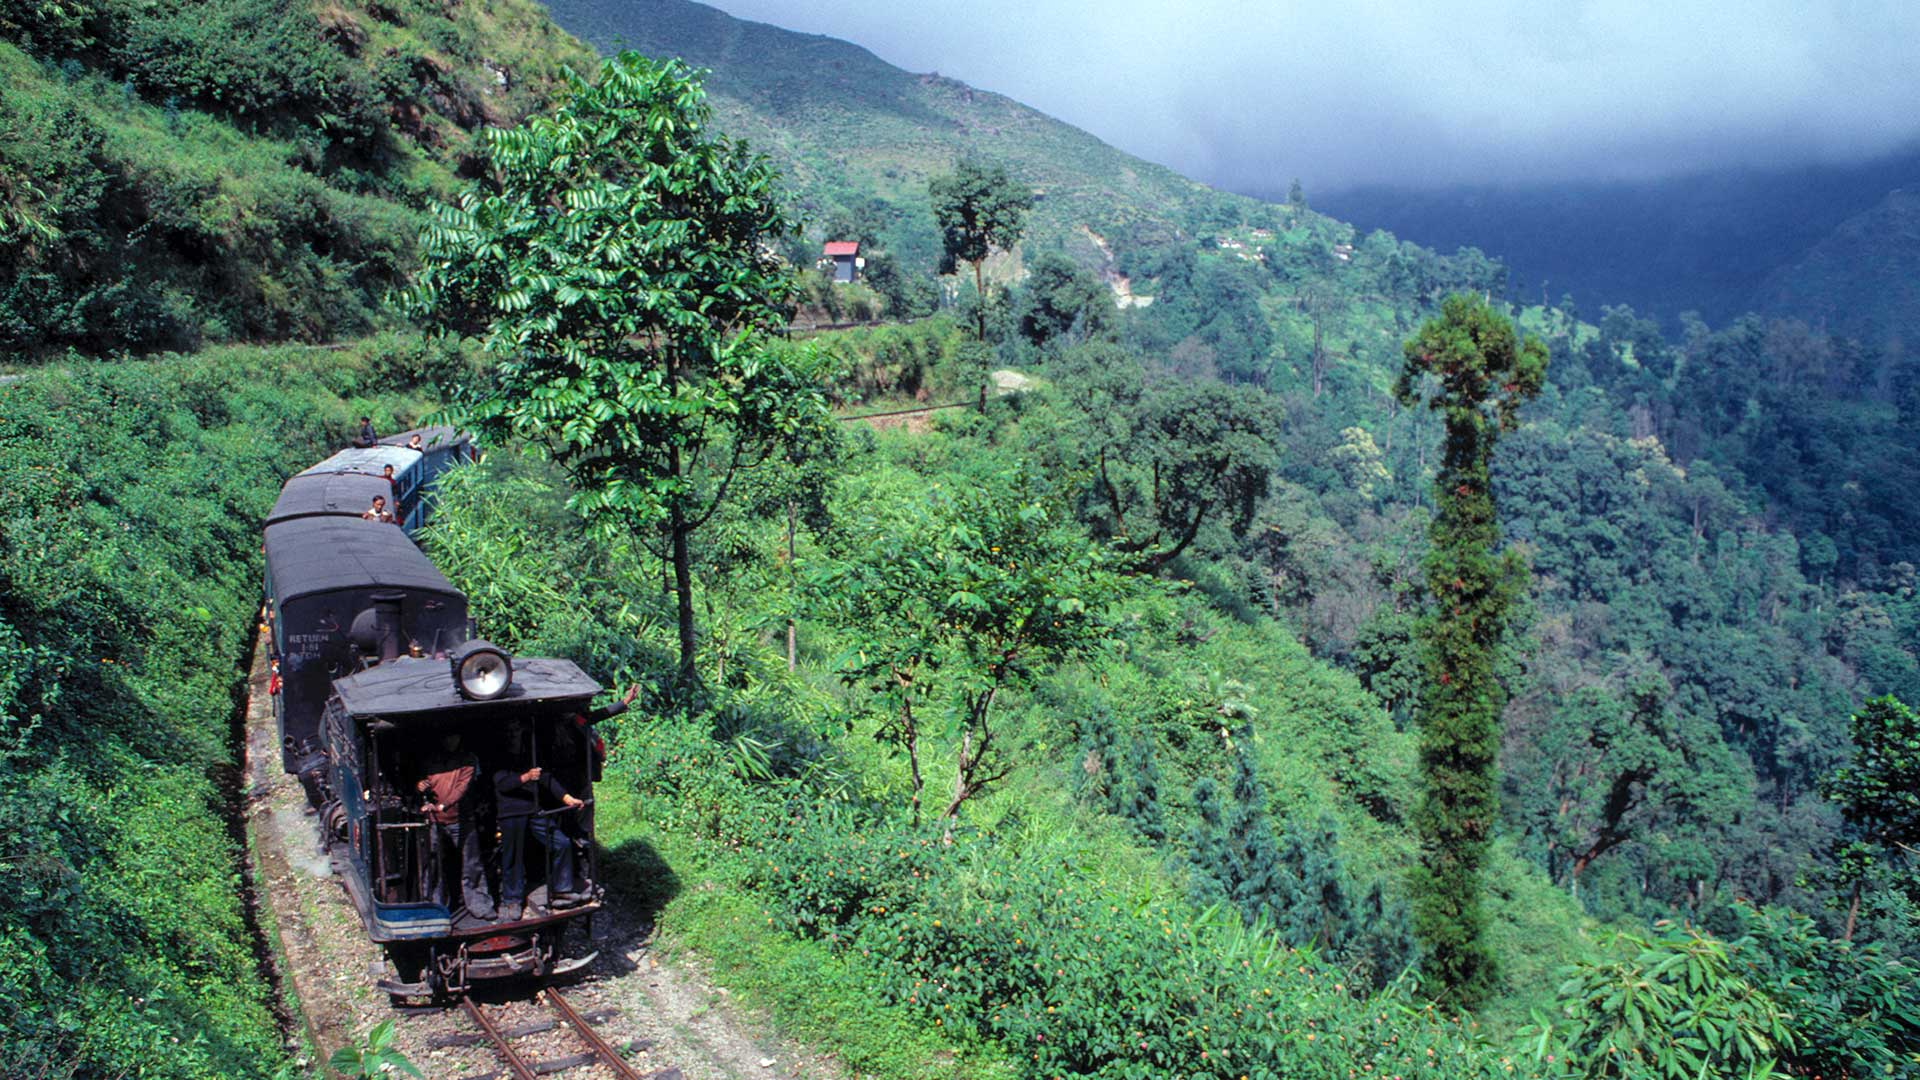 The Darjeeling Himalayan Railway, a UNESCO World Heritage Site, cuts through the lush hillsides of Darjeeling, India